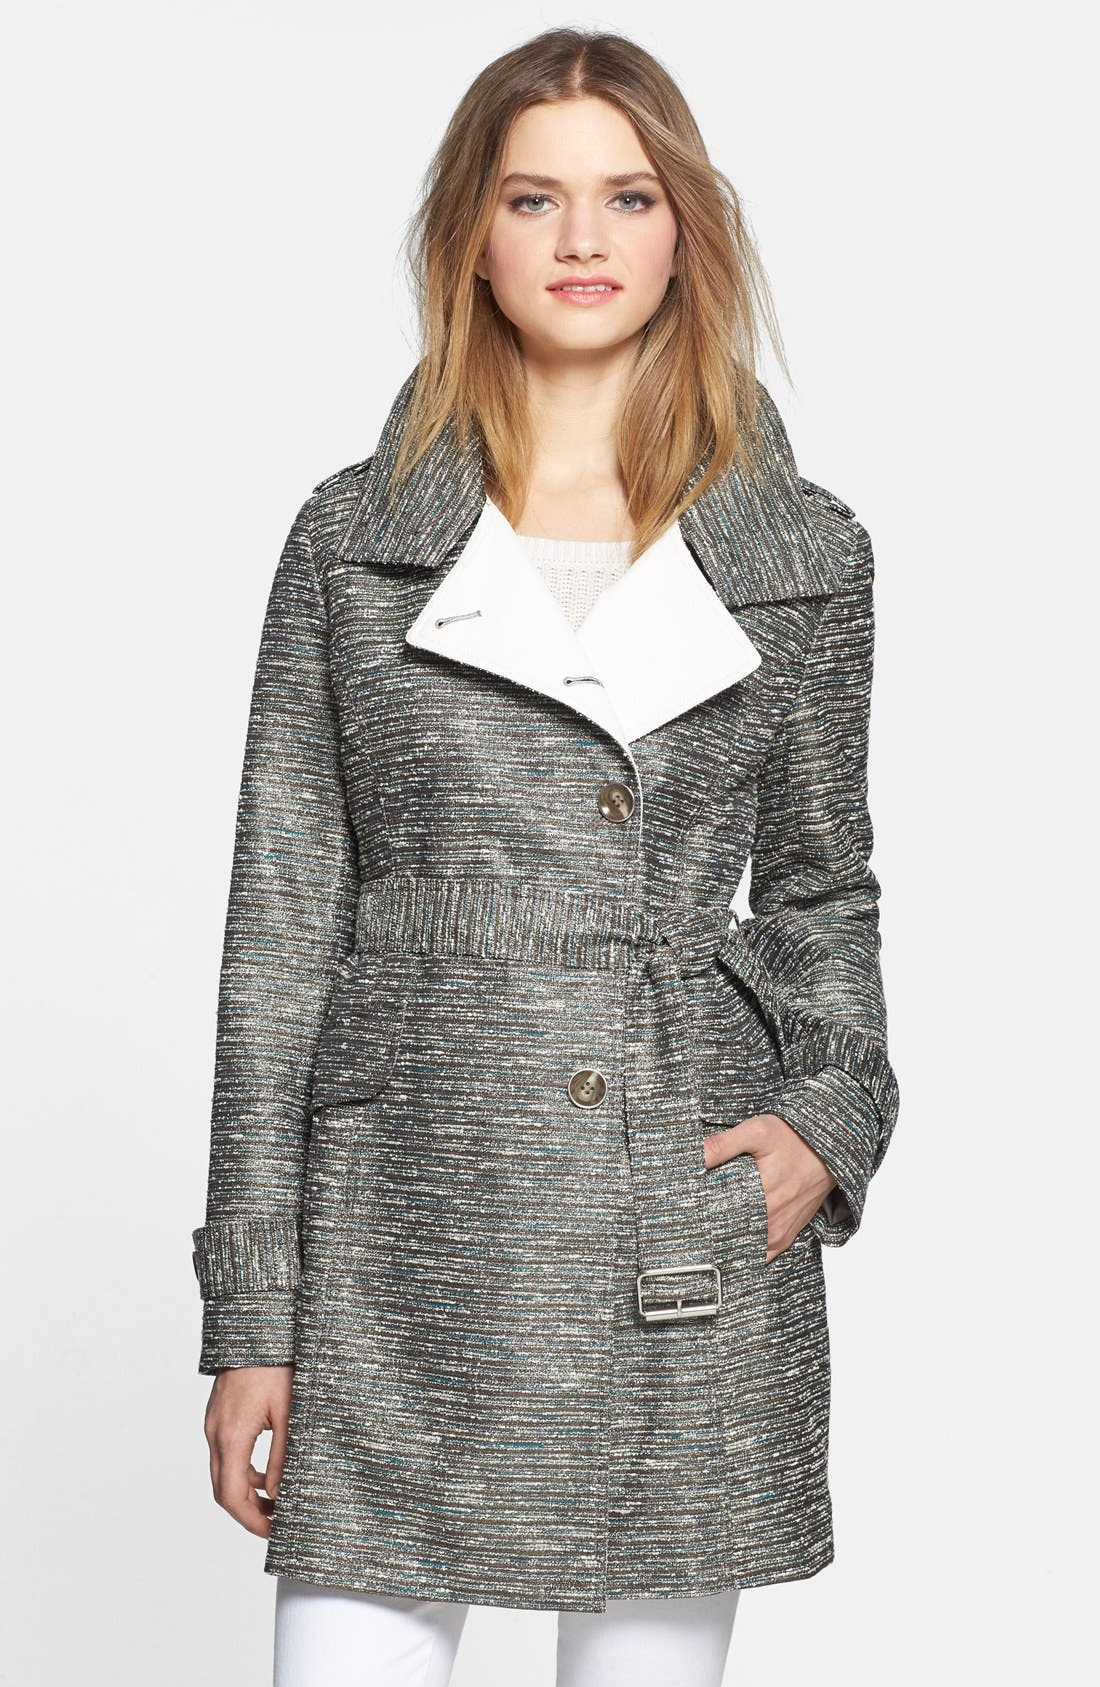 Alternate Image 1 Selected - Kenneth Cole New York Metallic Tweed Trench Coat